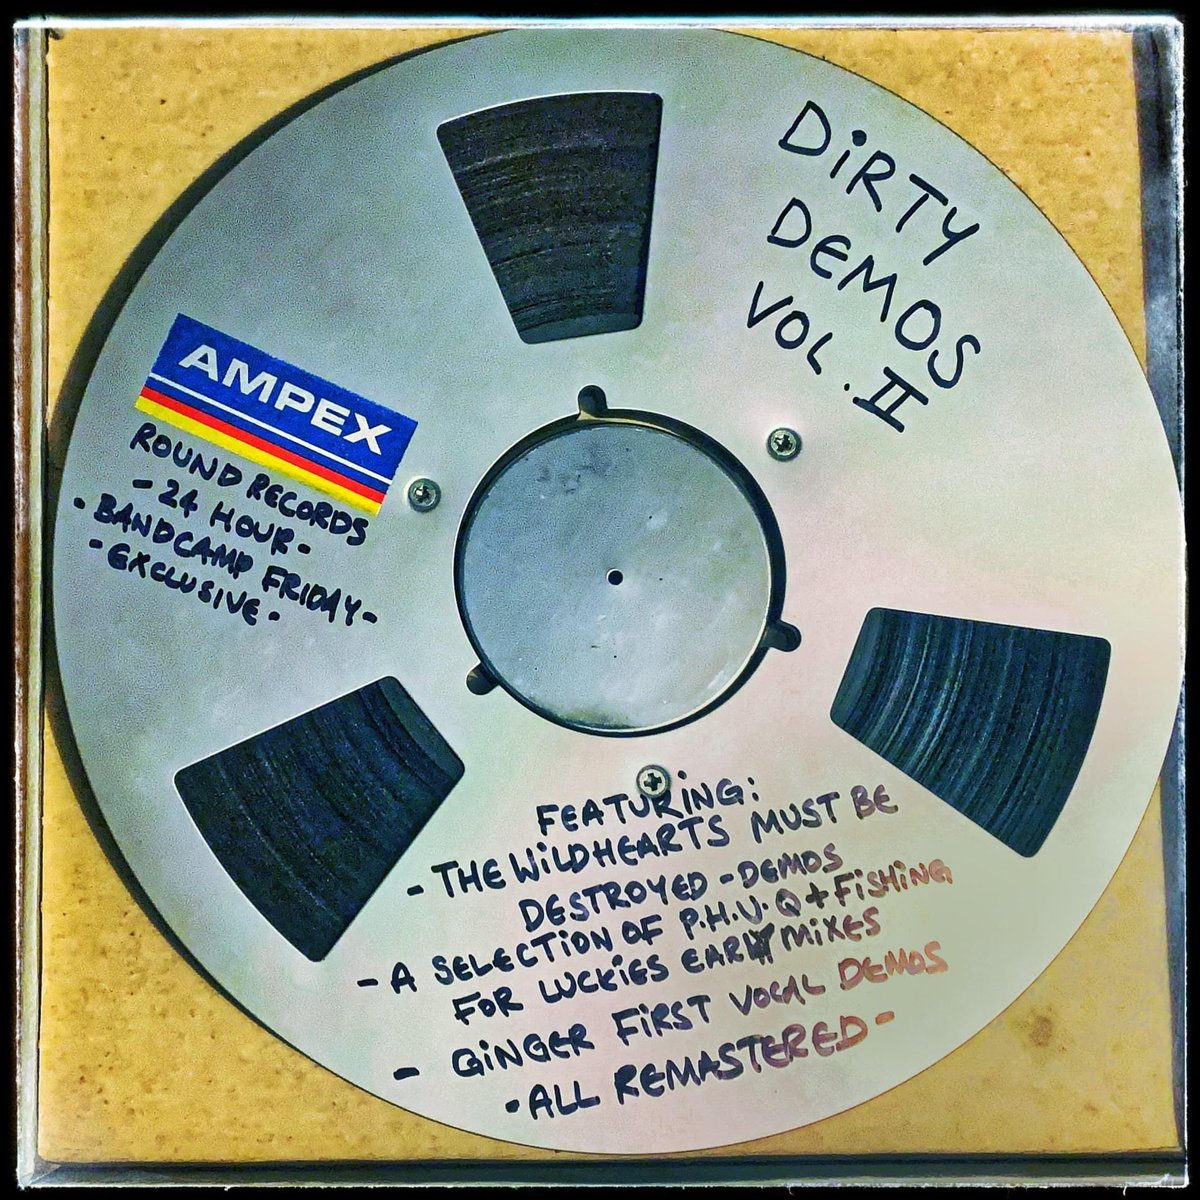 Bandcamp Friday offerings. Dirty Demos vol 2 and 'The First Three' available over on